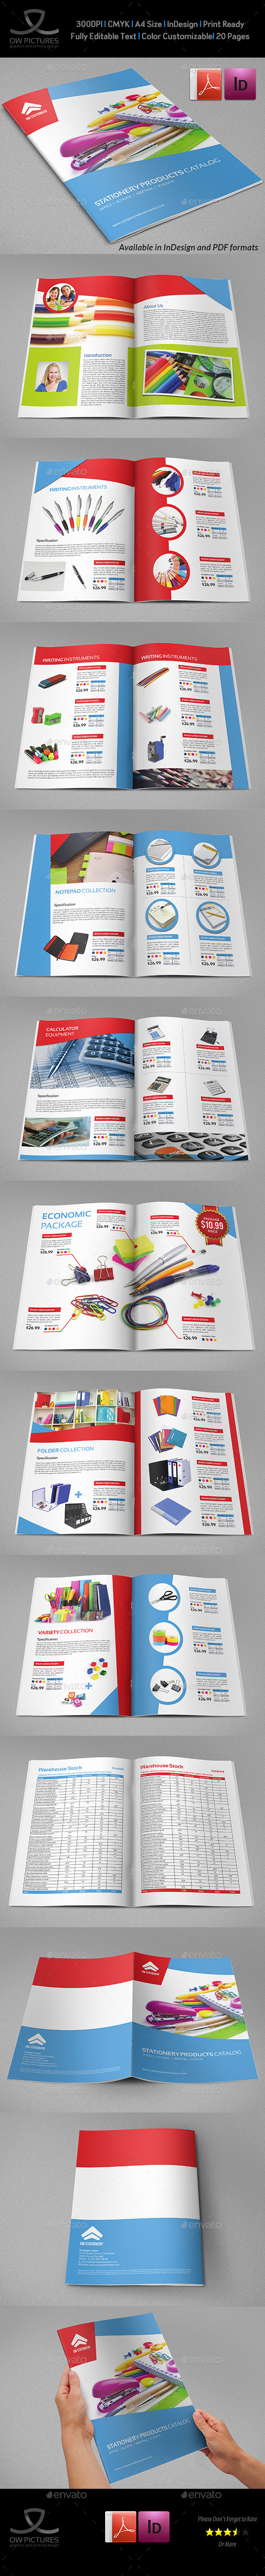 Stationery Products Catalog Brochure - 20 Pages - Catalogs Brochures